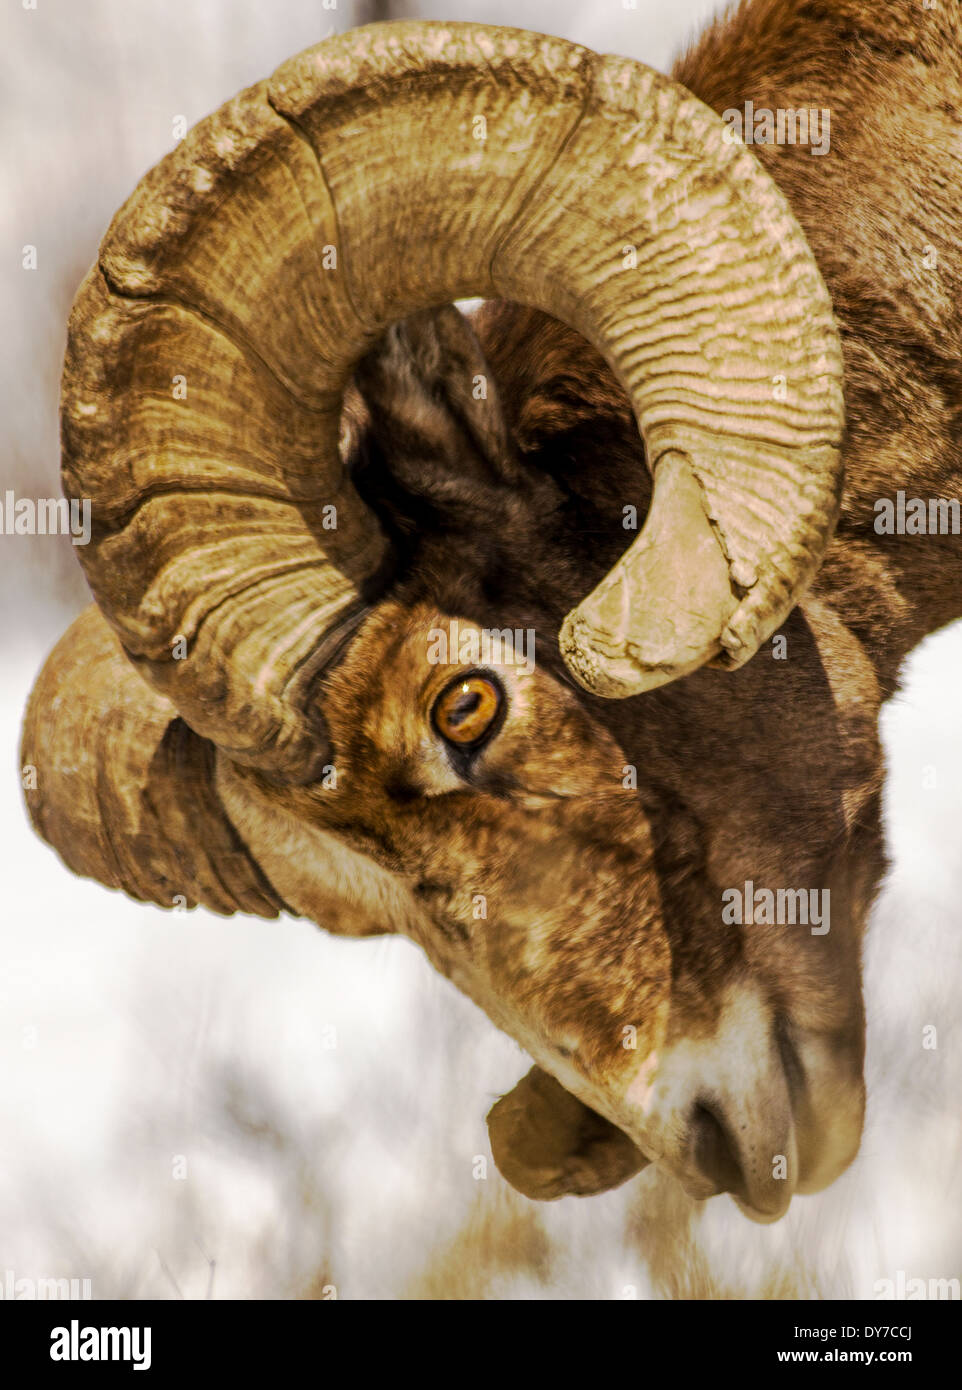 Bighorn Sheep, Ovis Canadensis, Lamar Valley, Yellowstone National Park, Wyoming, USA - Stock Image